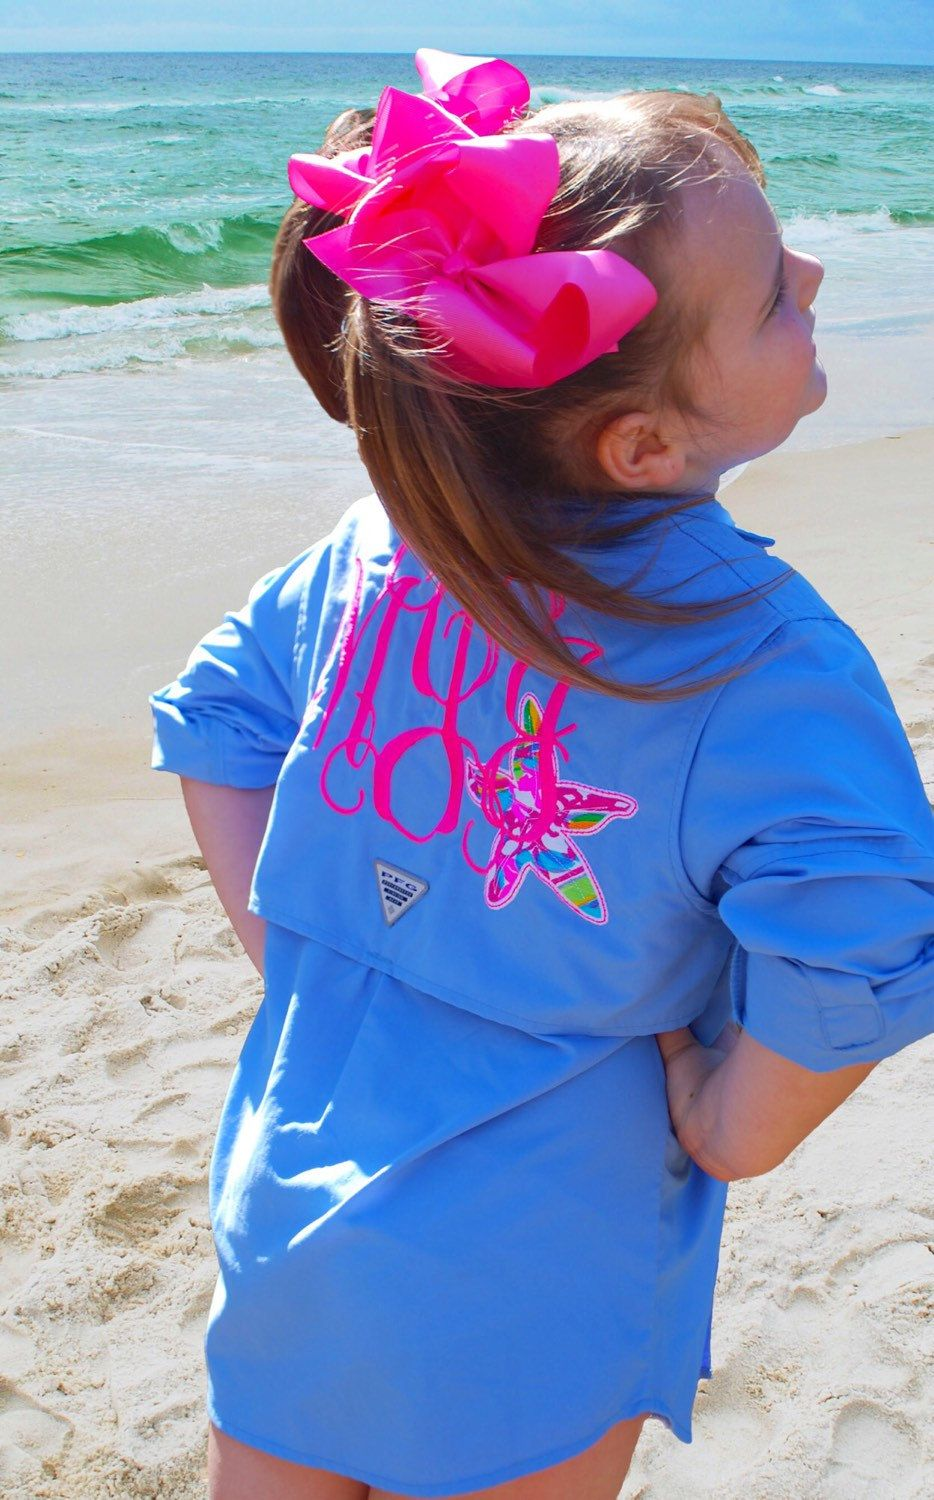 c38bcc2f8a Monogrammed Kids Columbia PFG Fishing Shirt with Lilly Pulitzer Starfish  Accent Swimsuit Cover Up by TantrumEmbroidery on Etsy